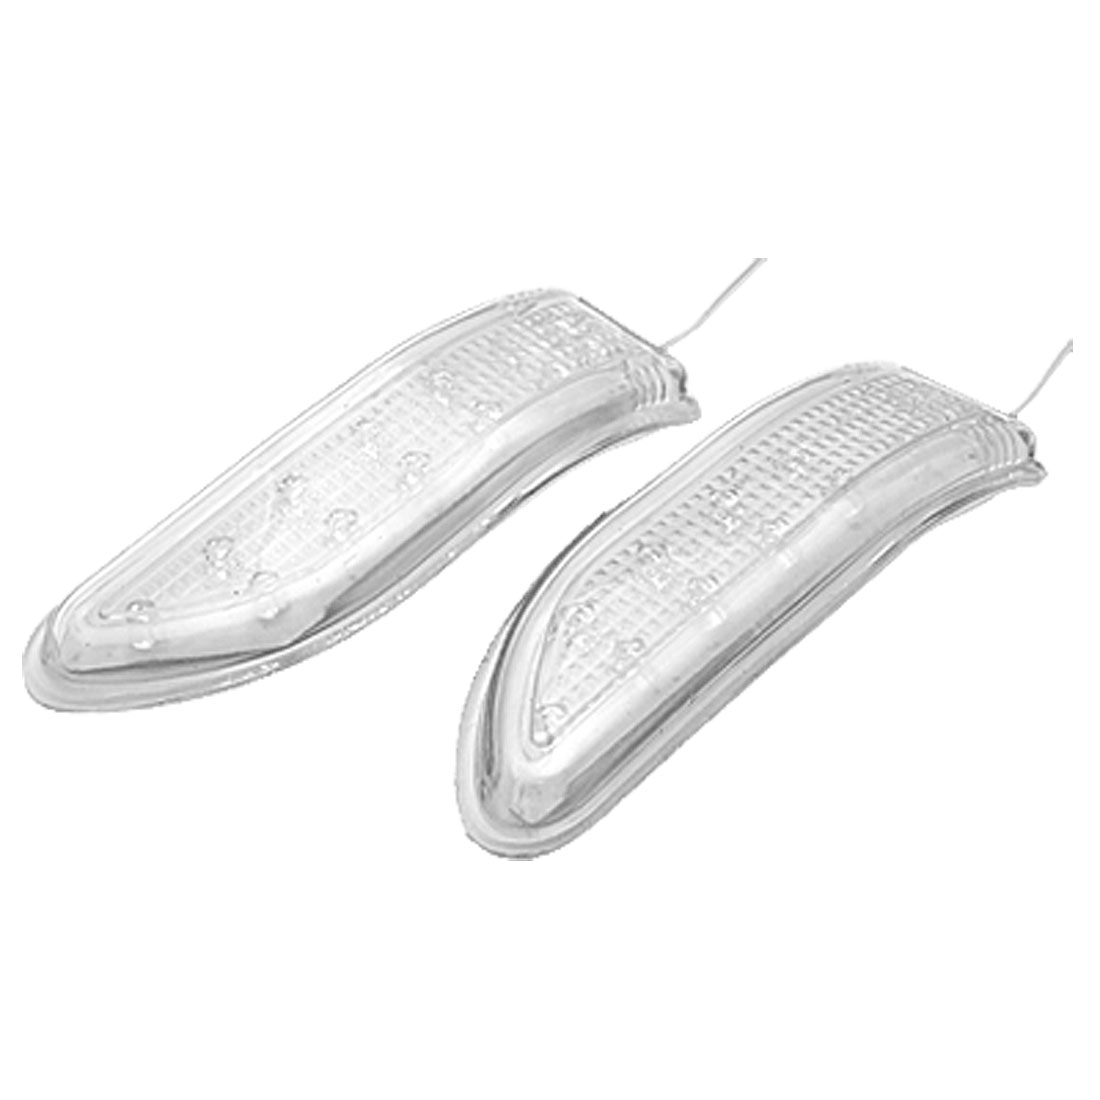 Car Auto 13 LED Soft Indicator Turn Light Lamp 2 PCS (FG-36)